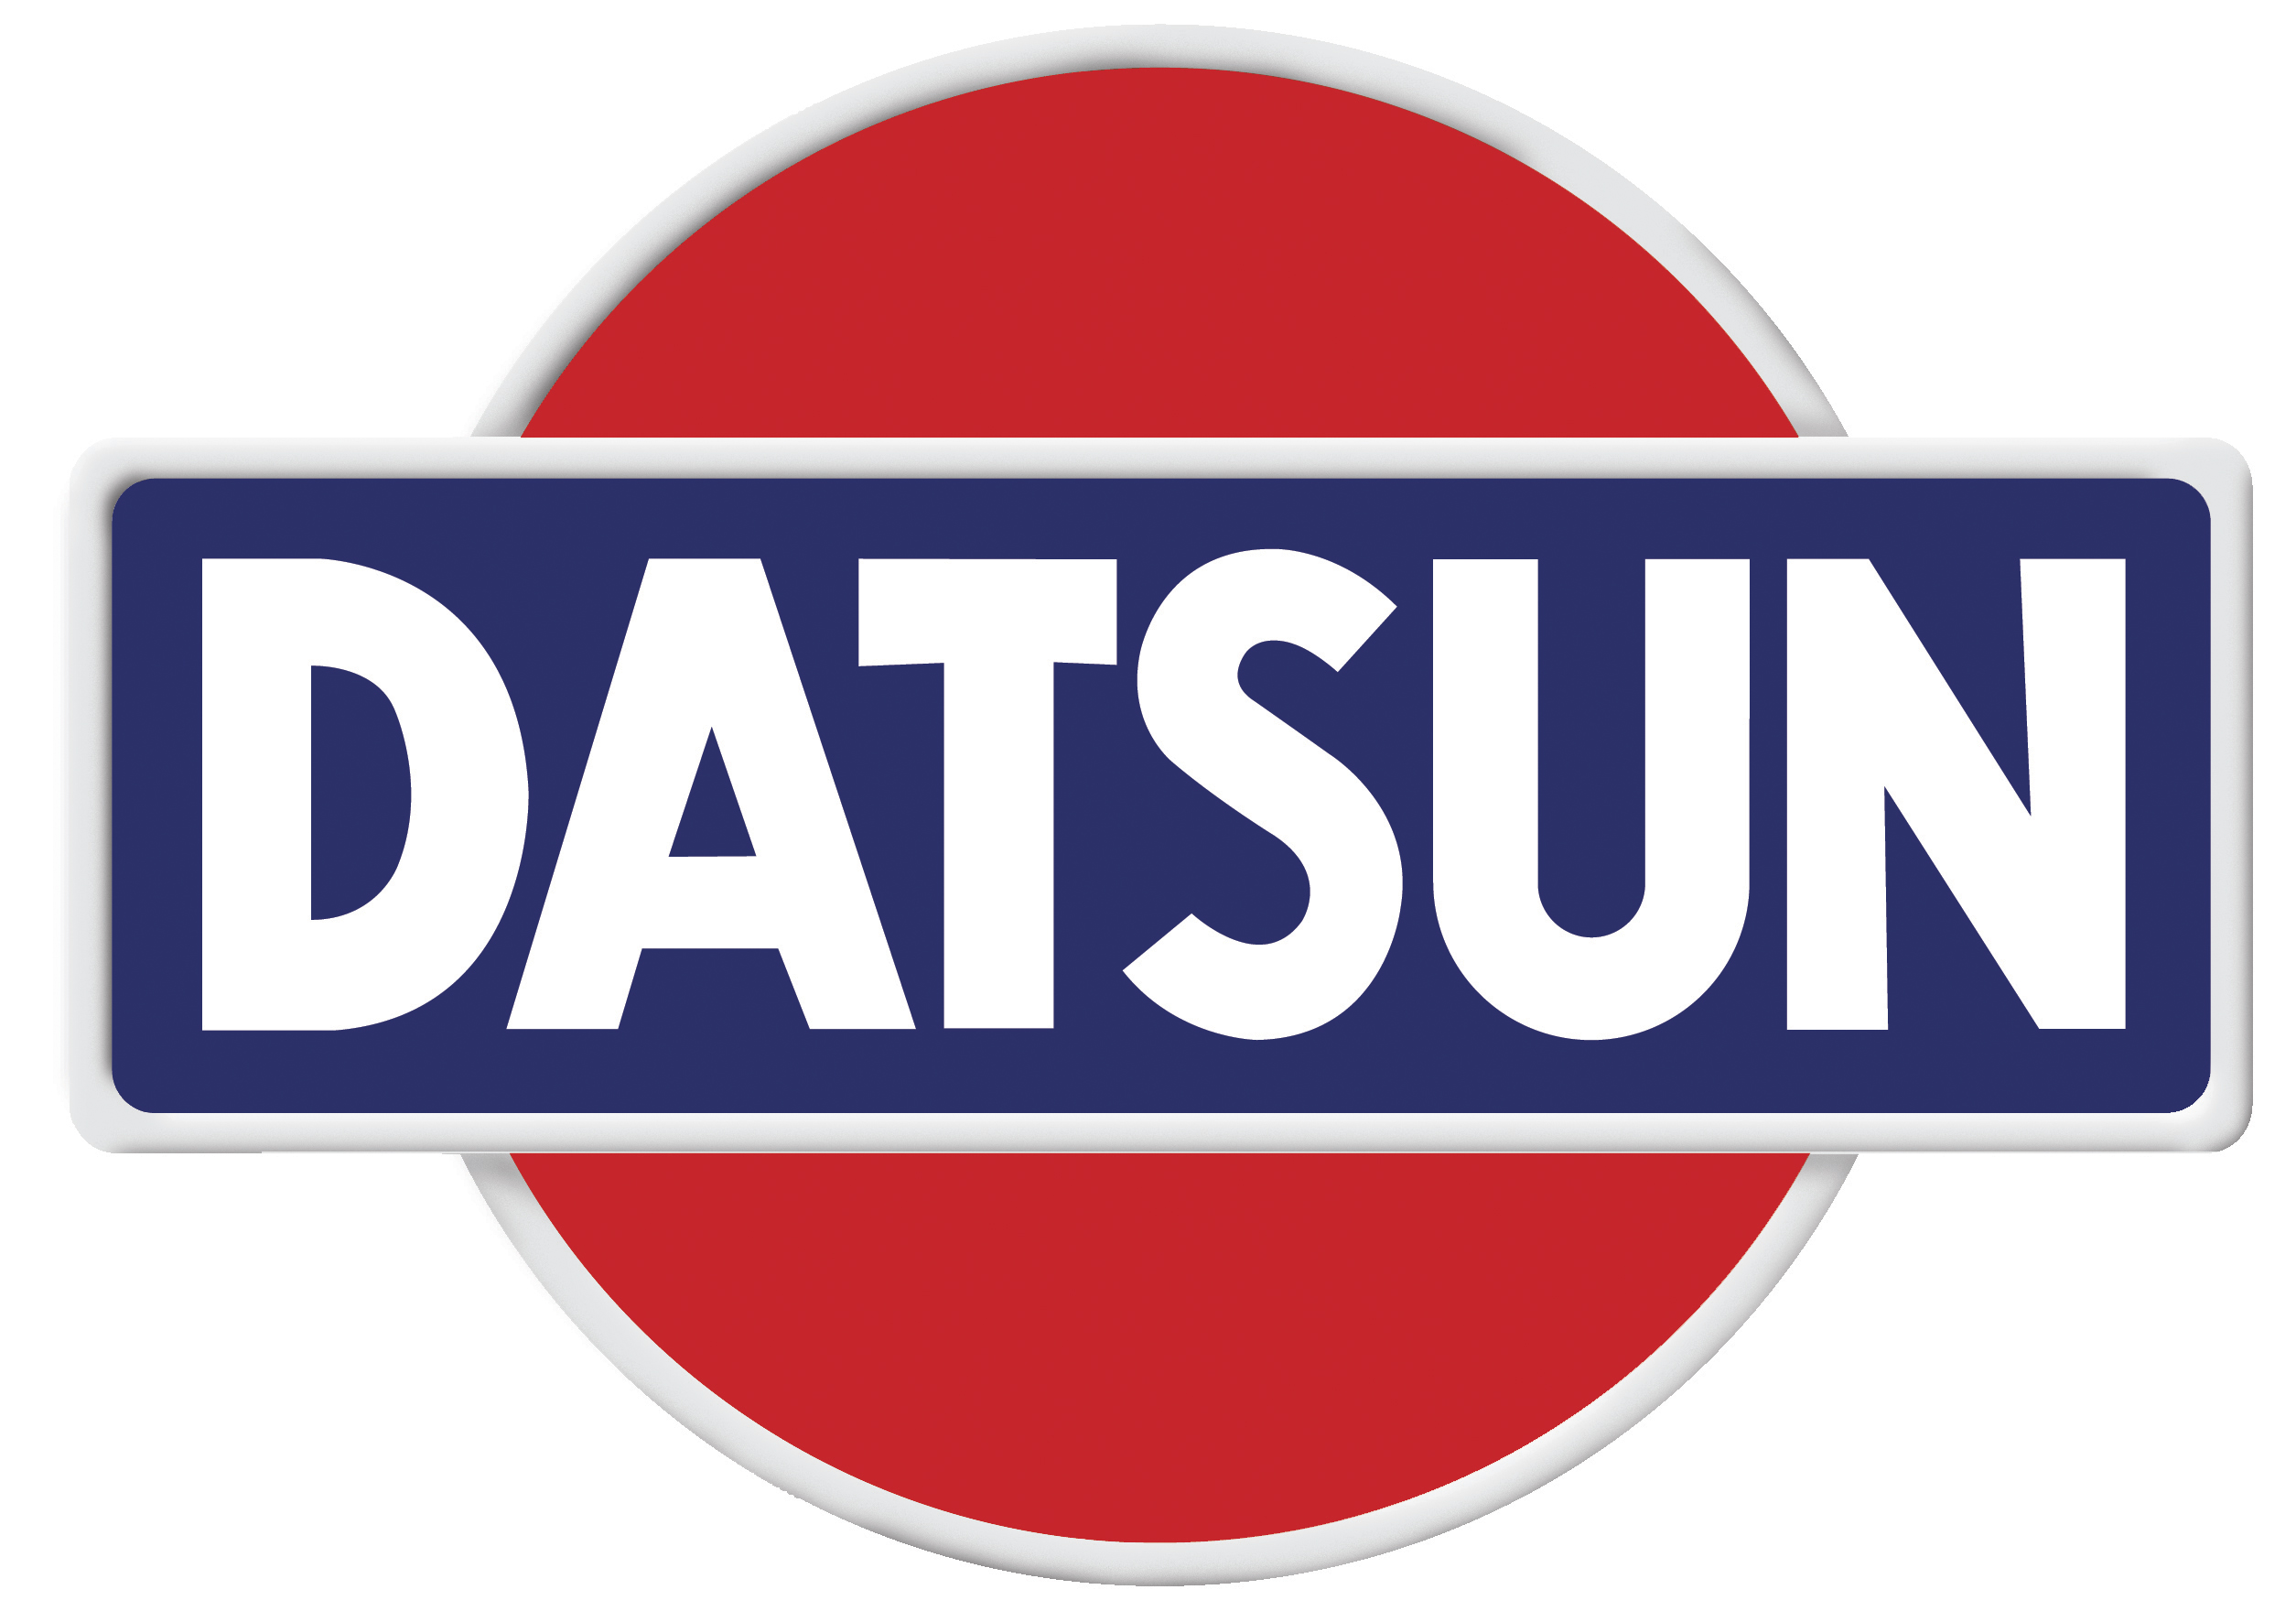 2509x1772 - Datsun Wallpapers 19